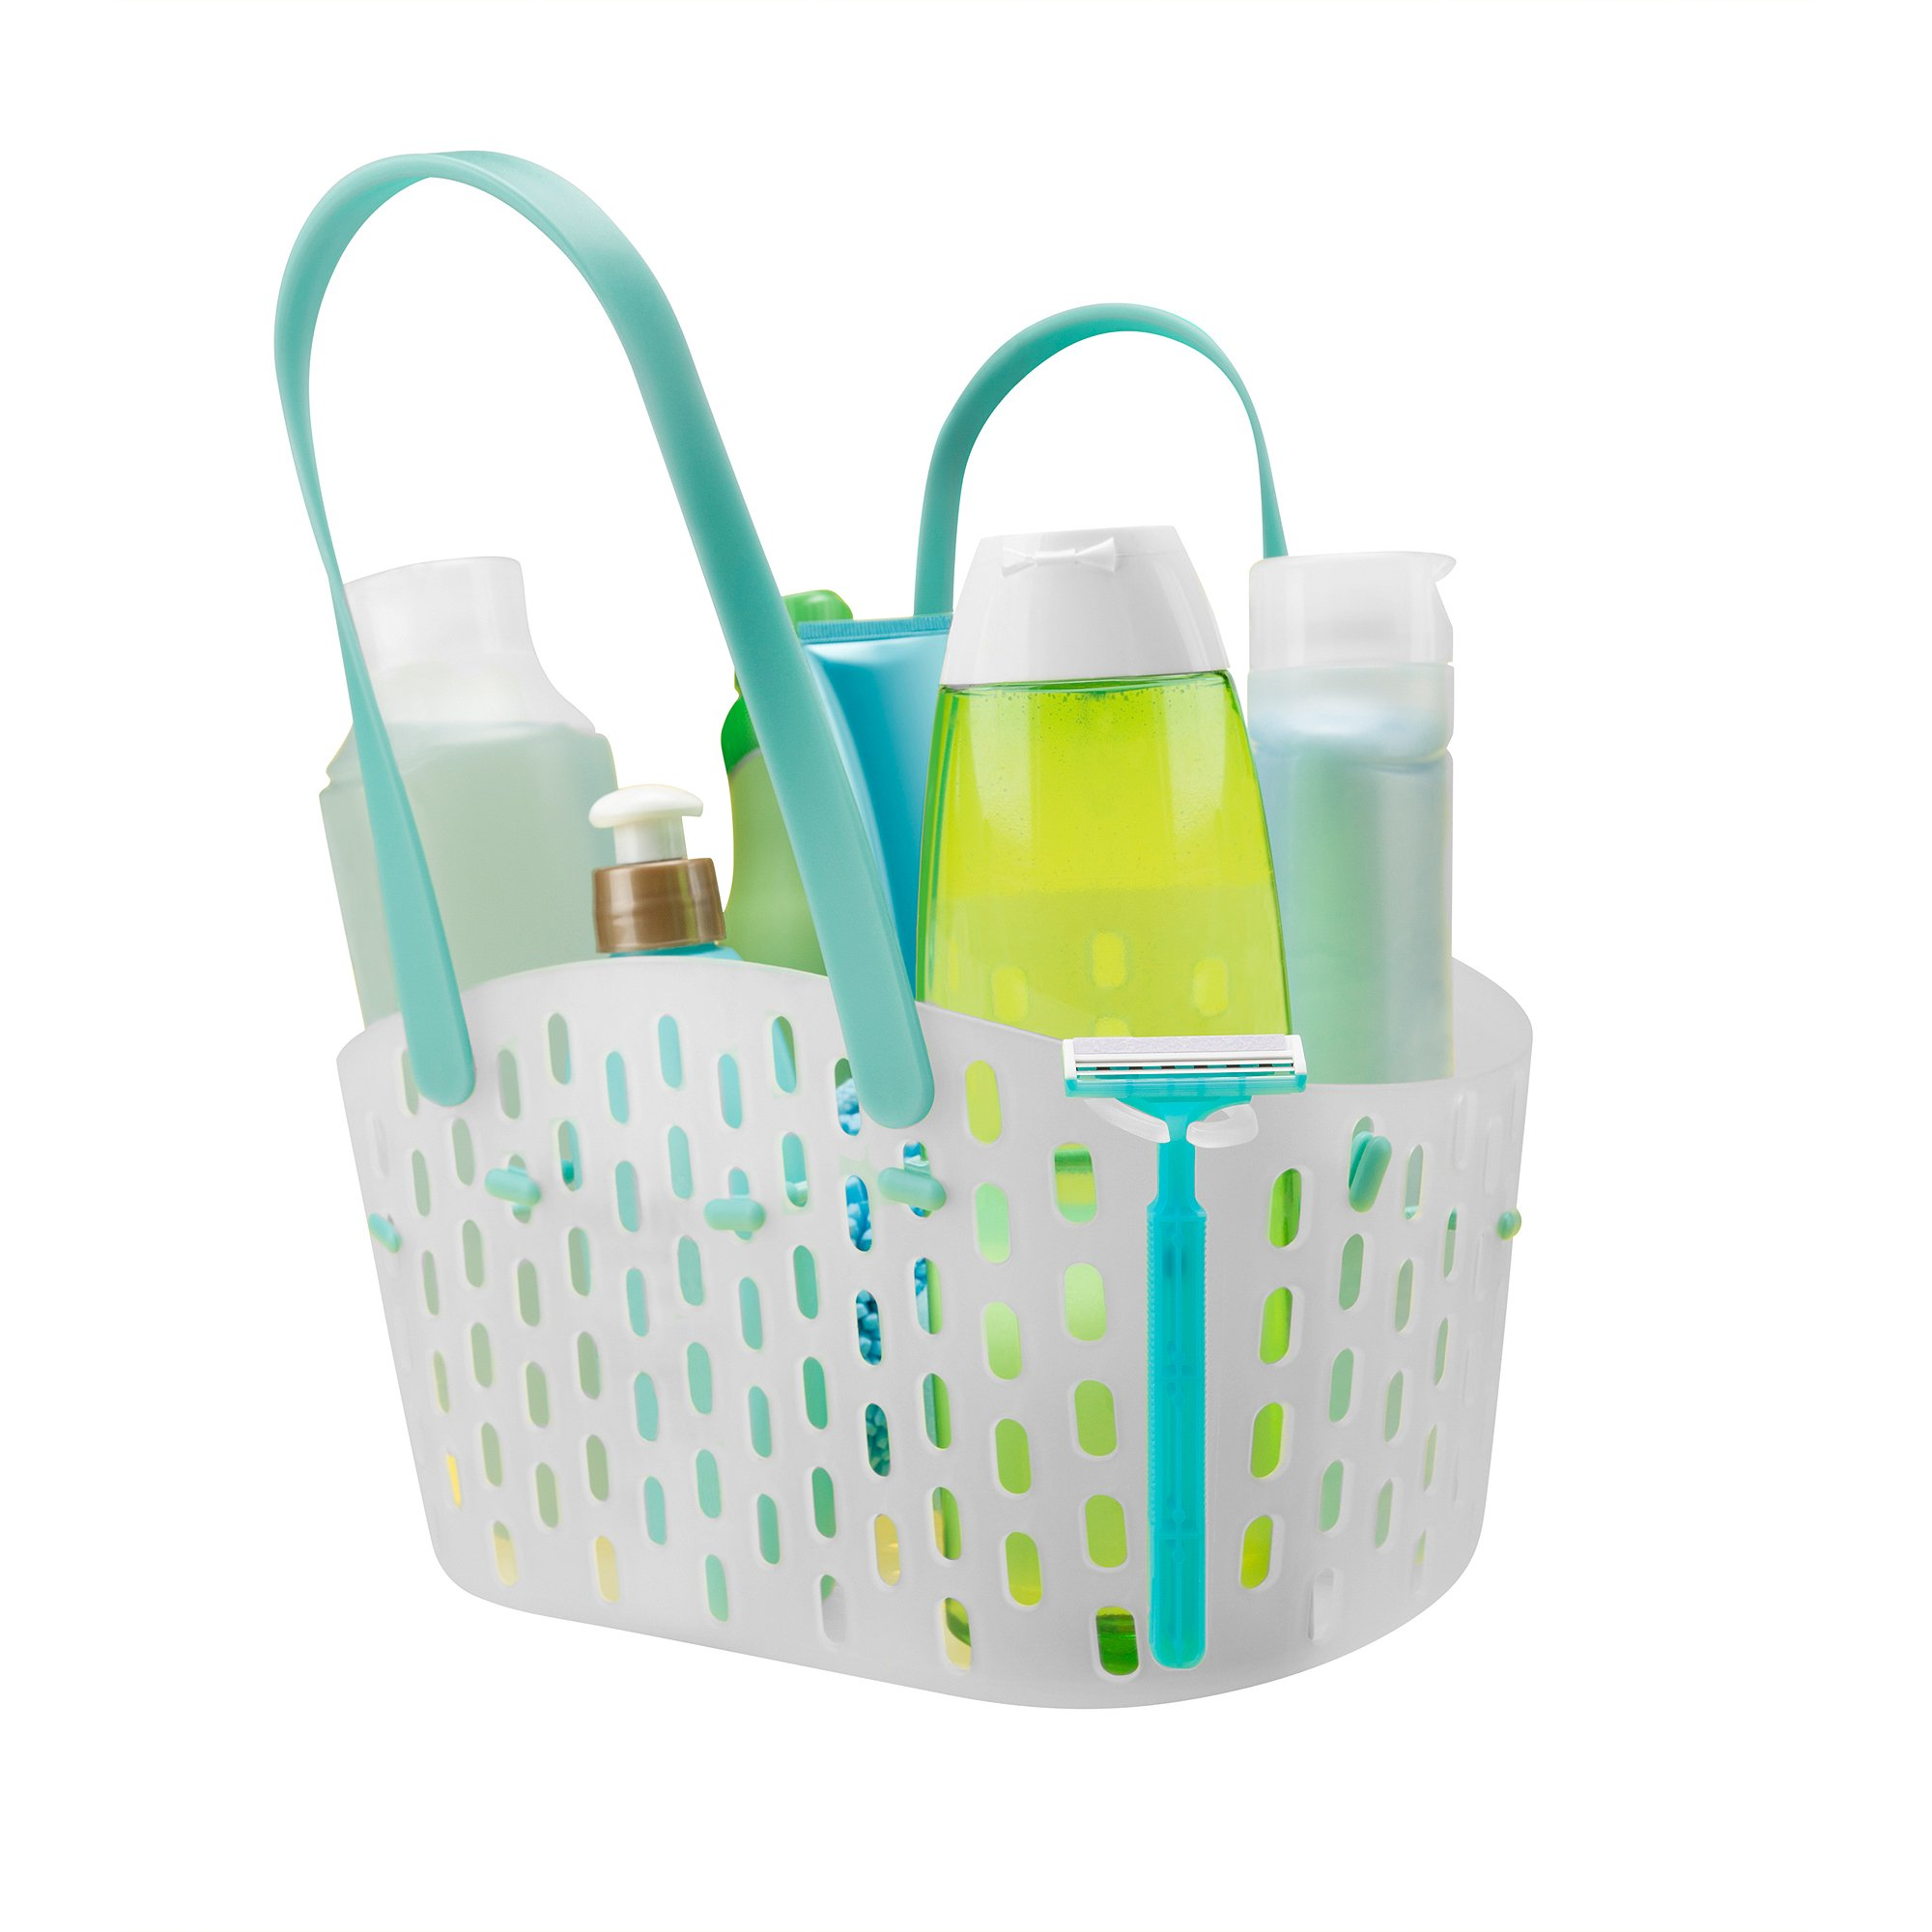 Quirky Shower Caddy - Eunstudio.com -